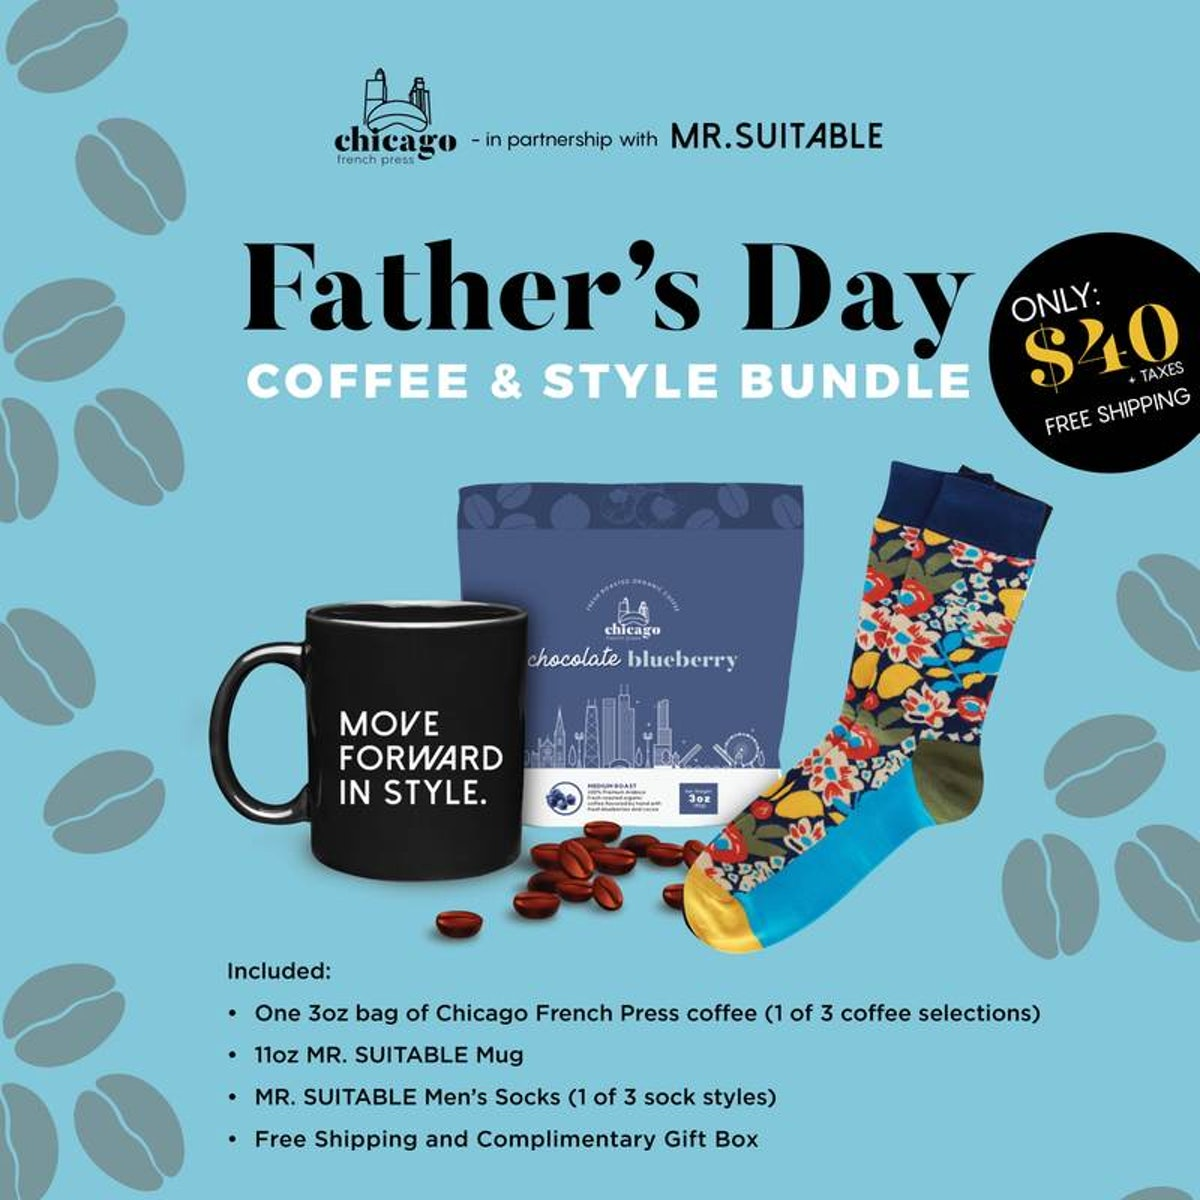 Father's Day Coffee & Style Bundle